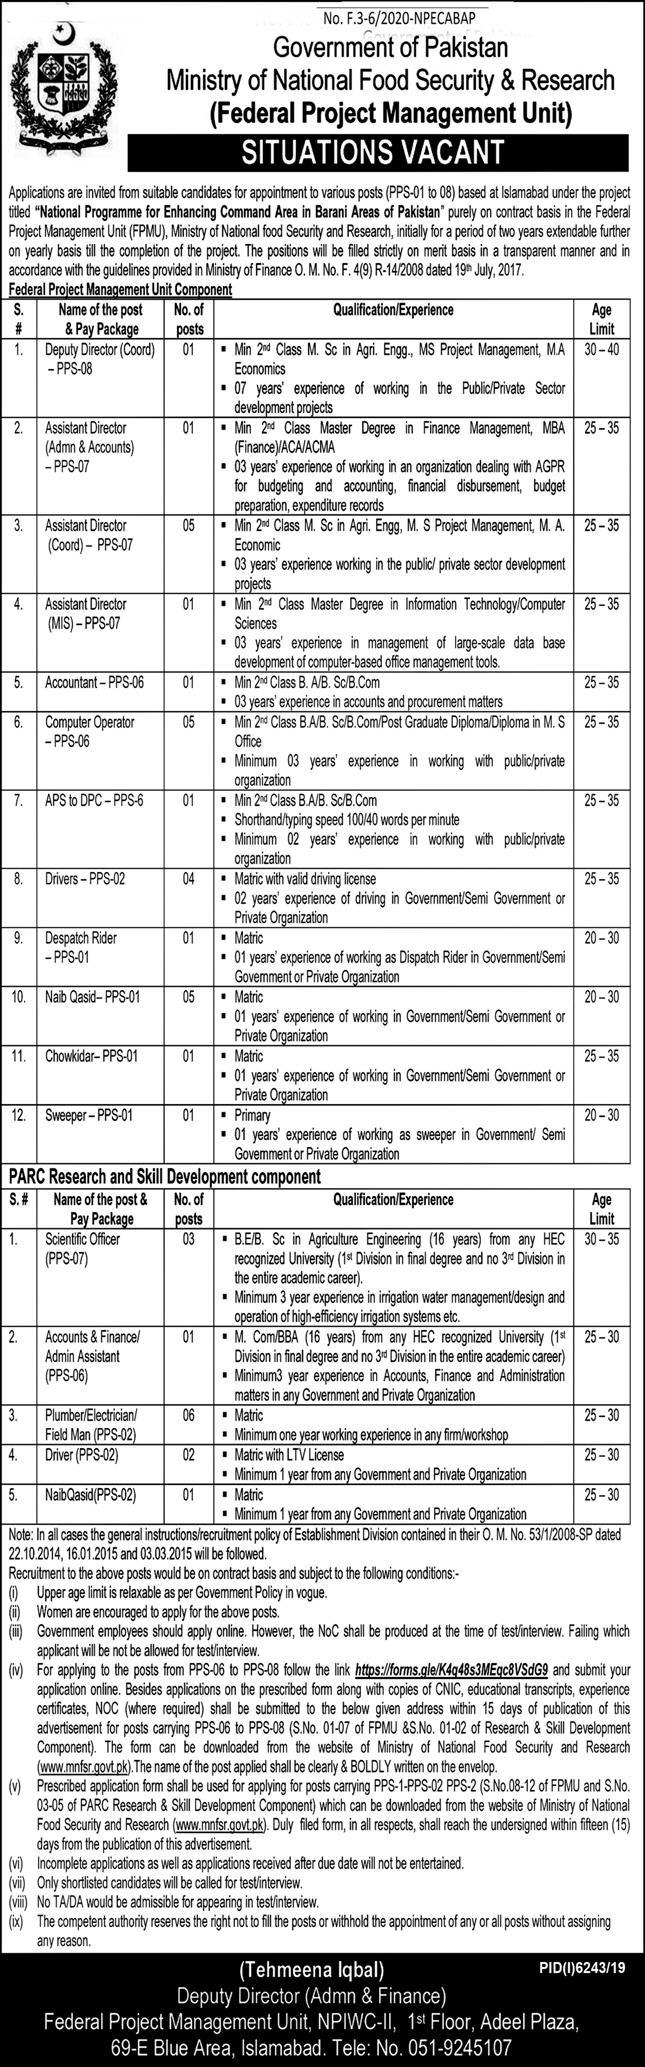 Ministry of National Food Security & Research Jobs May 2020